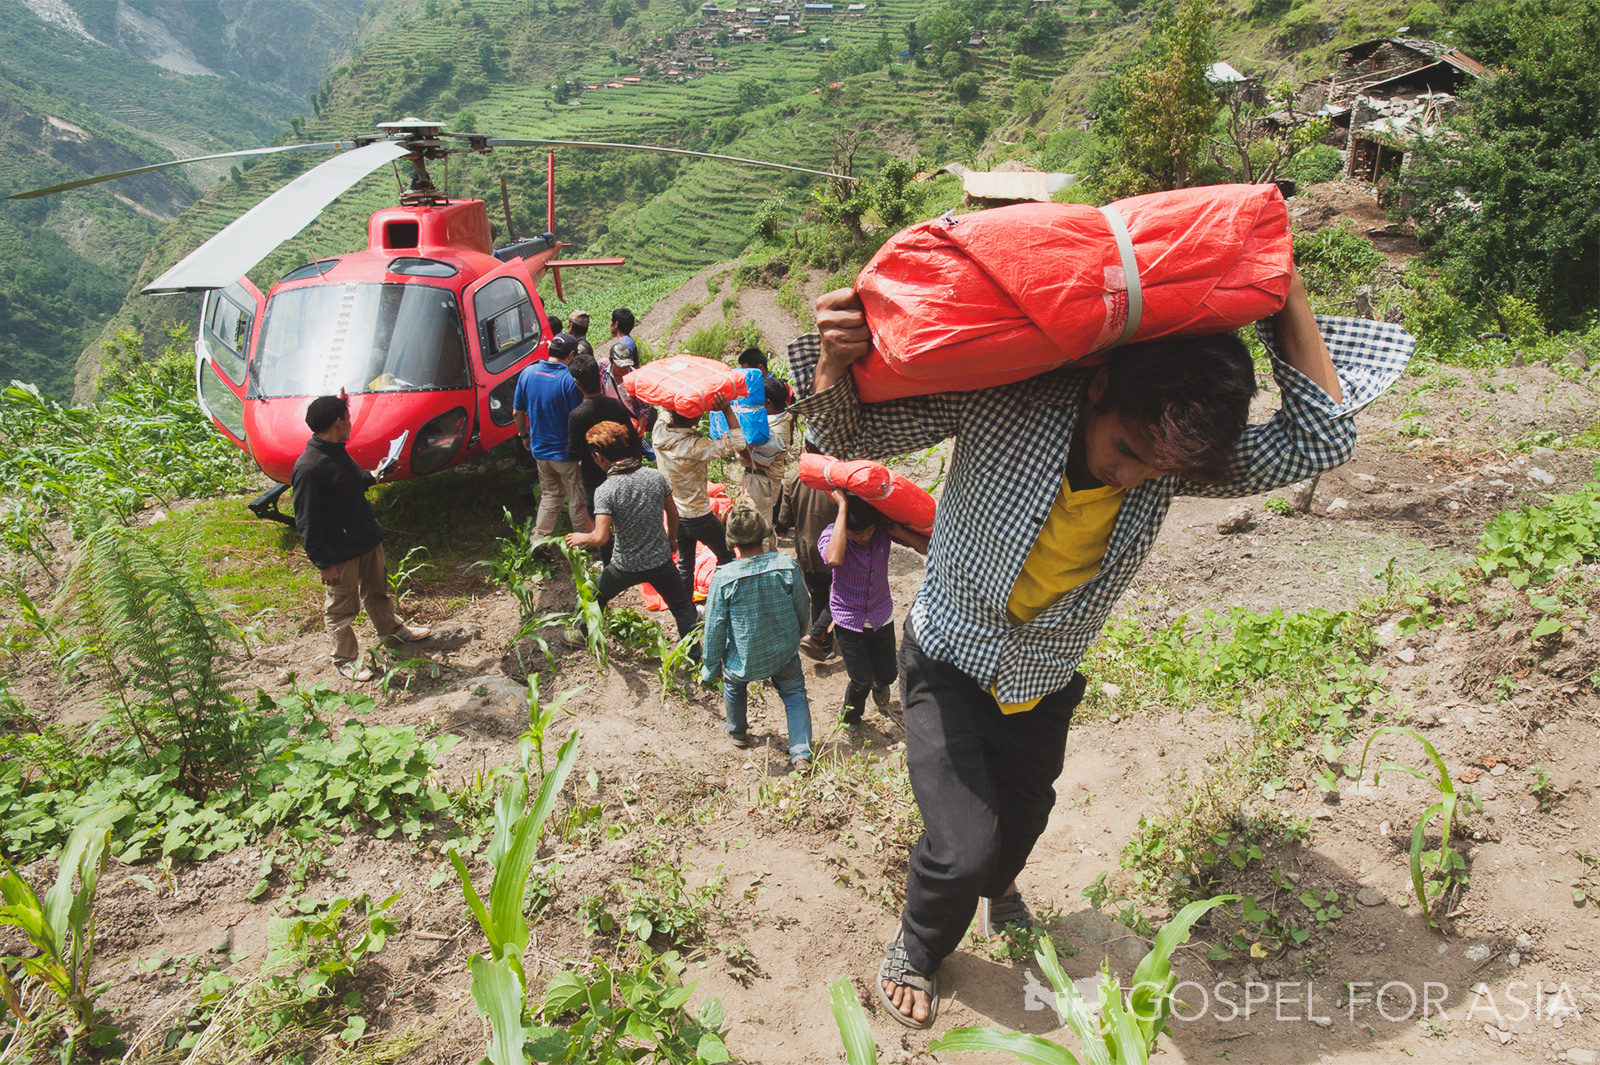 gospelforasia-nepal-earthquake-relief